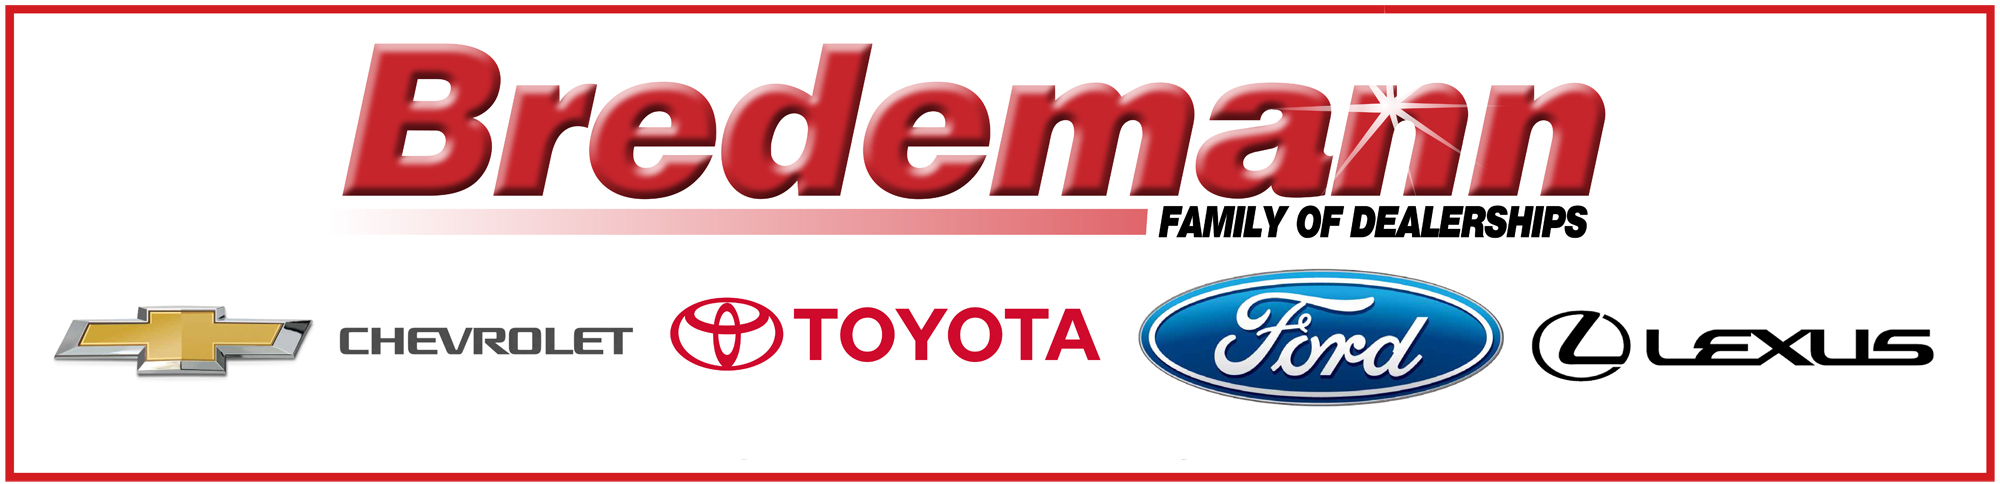 Bredemann Family of Dealerships